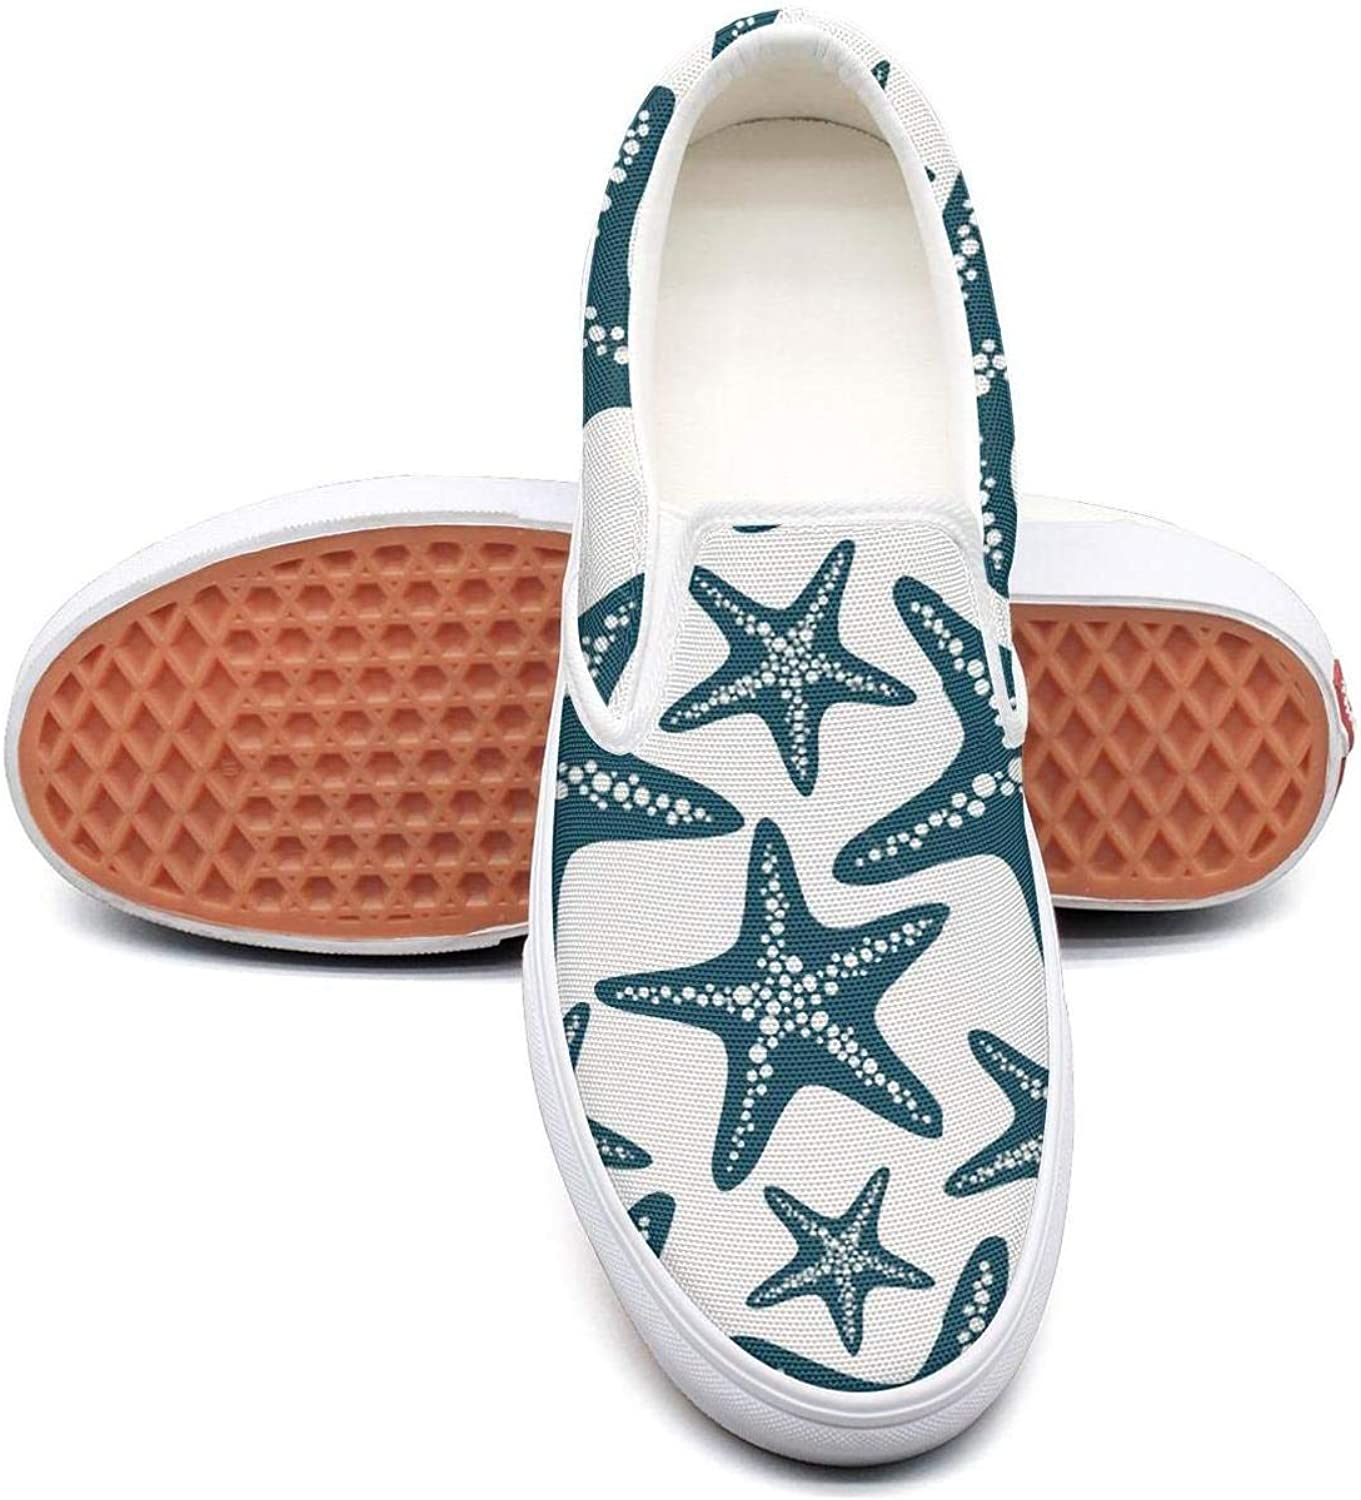 Lalige Starfish Pattern White Background Women Printed Graphics Canvas Slip-ONS Sneakers shoes